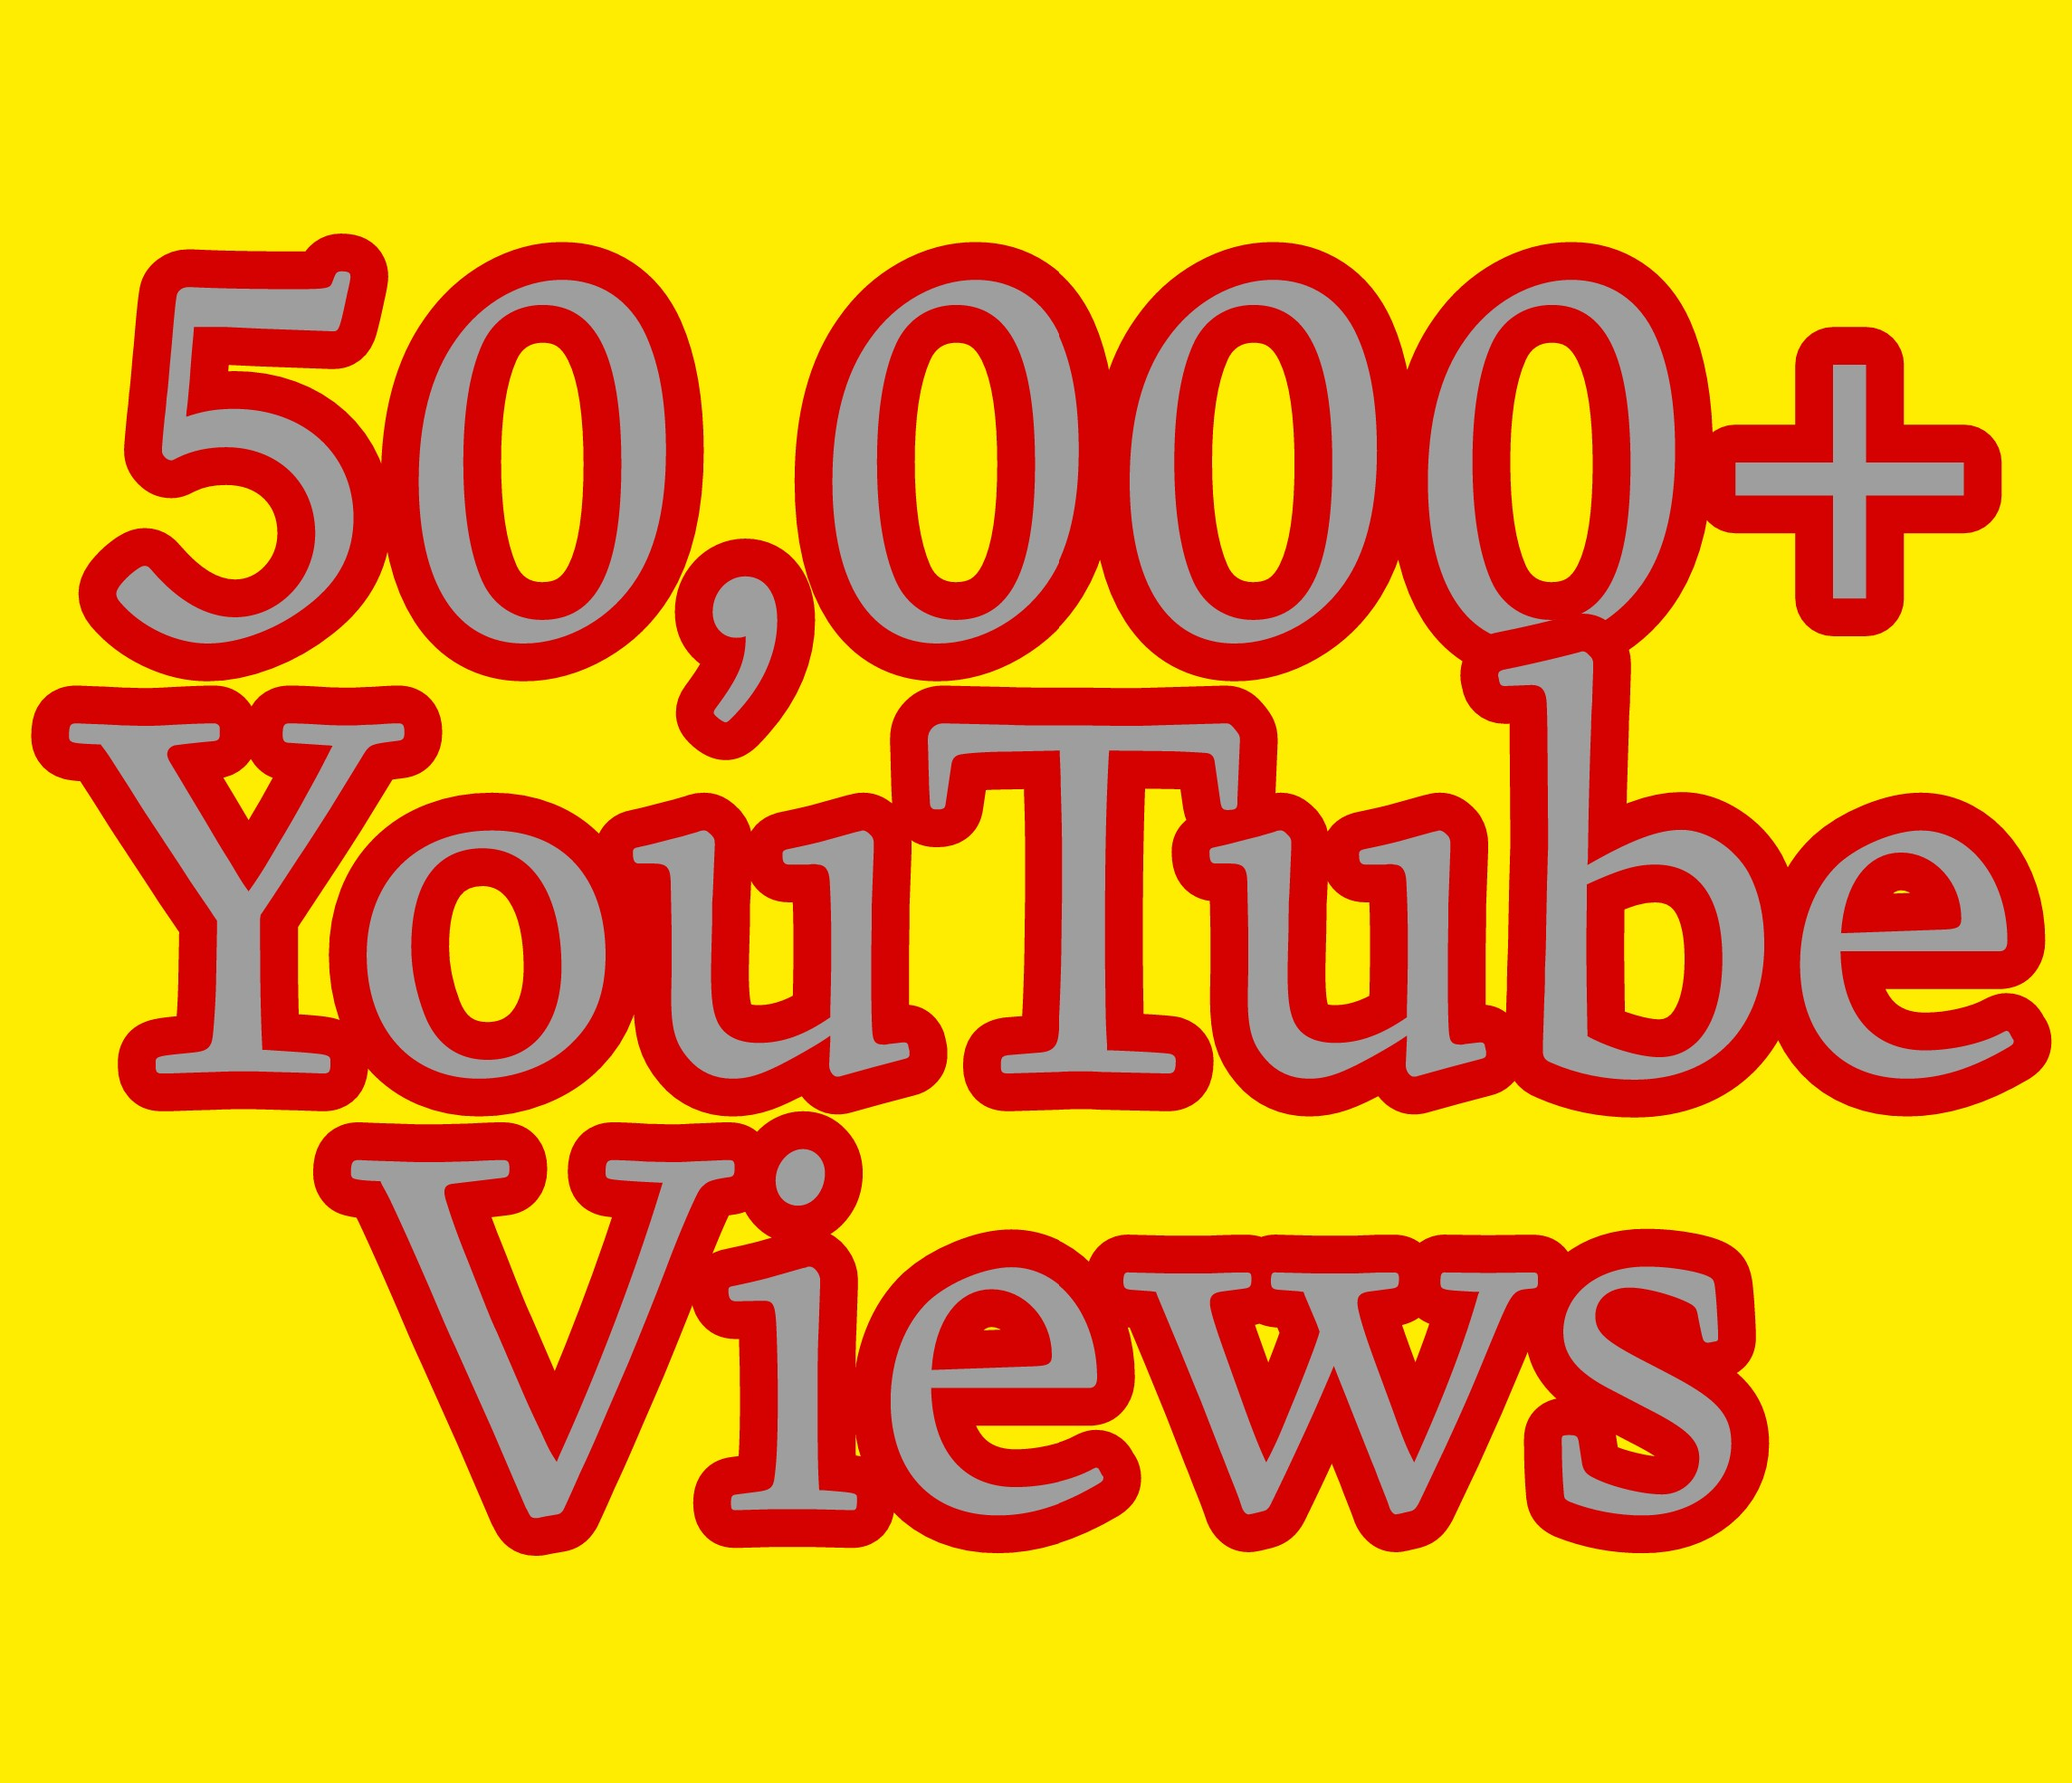 Safe 50,000+ You Tube Vie ws nondrop fast delivery